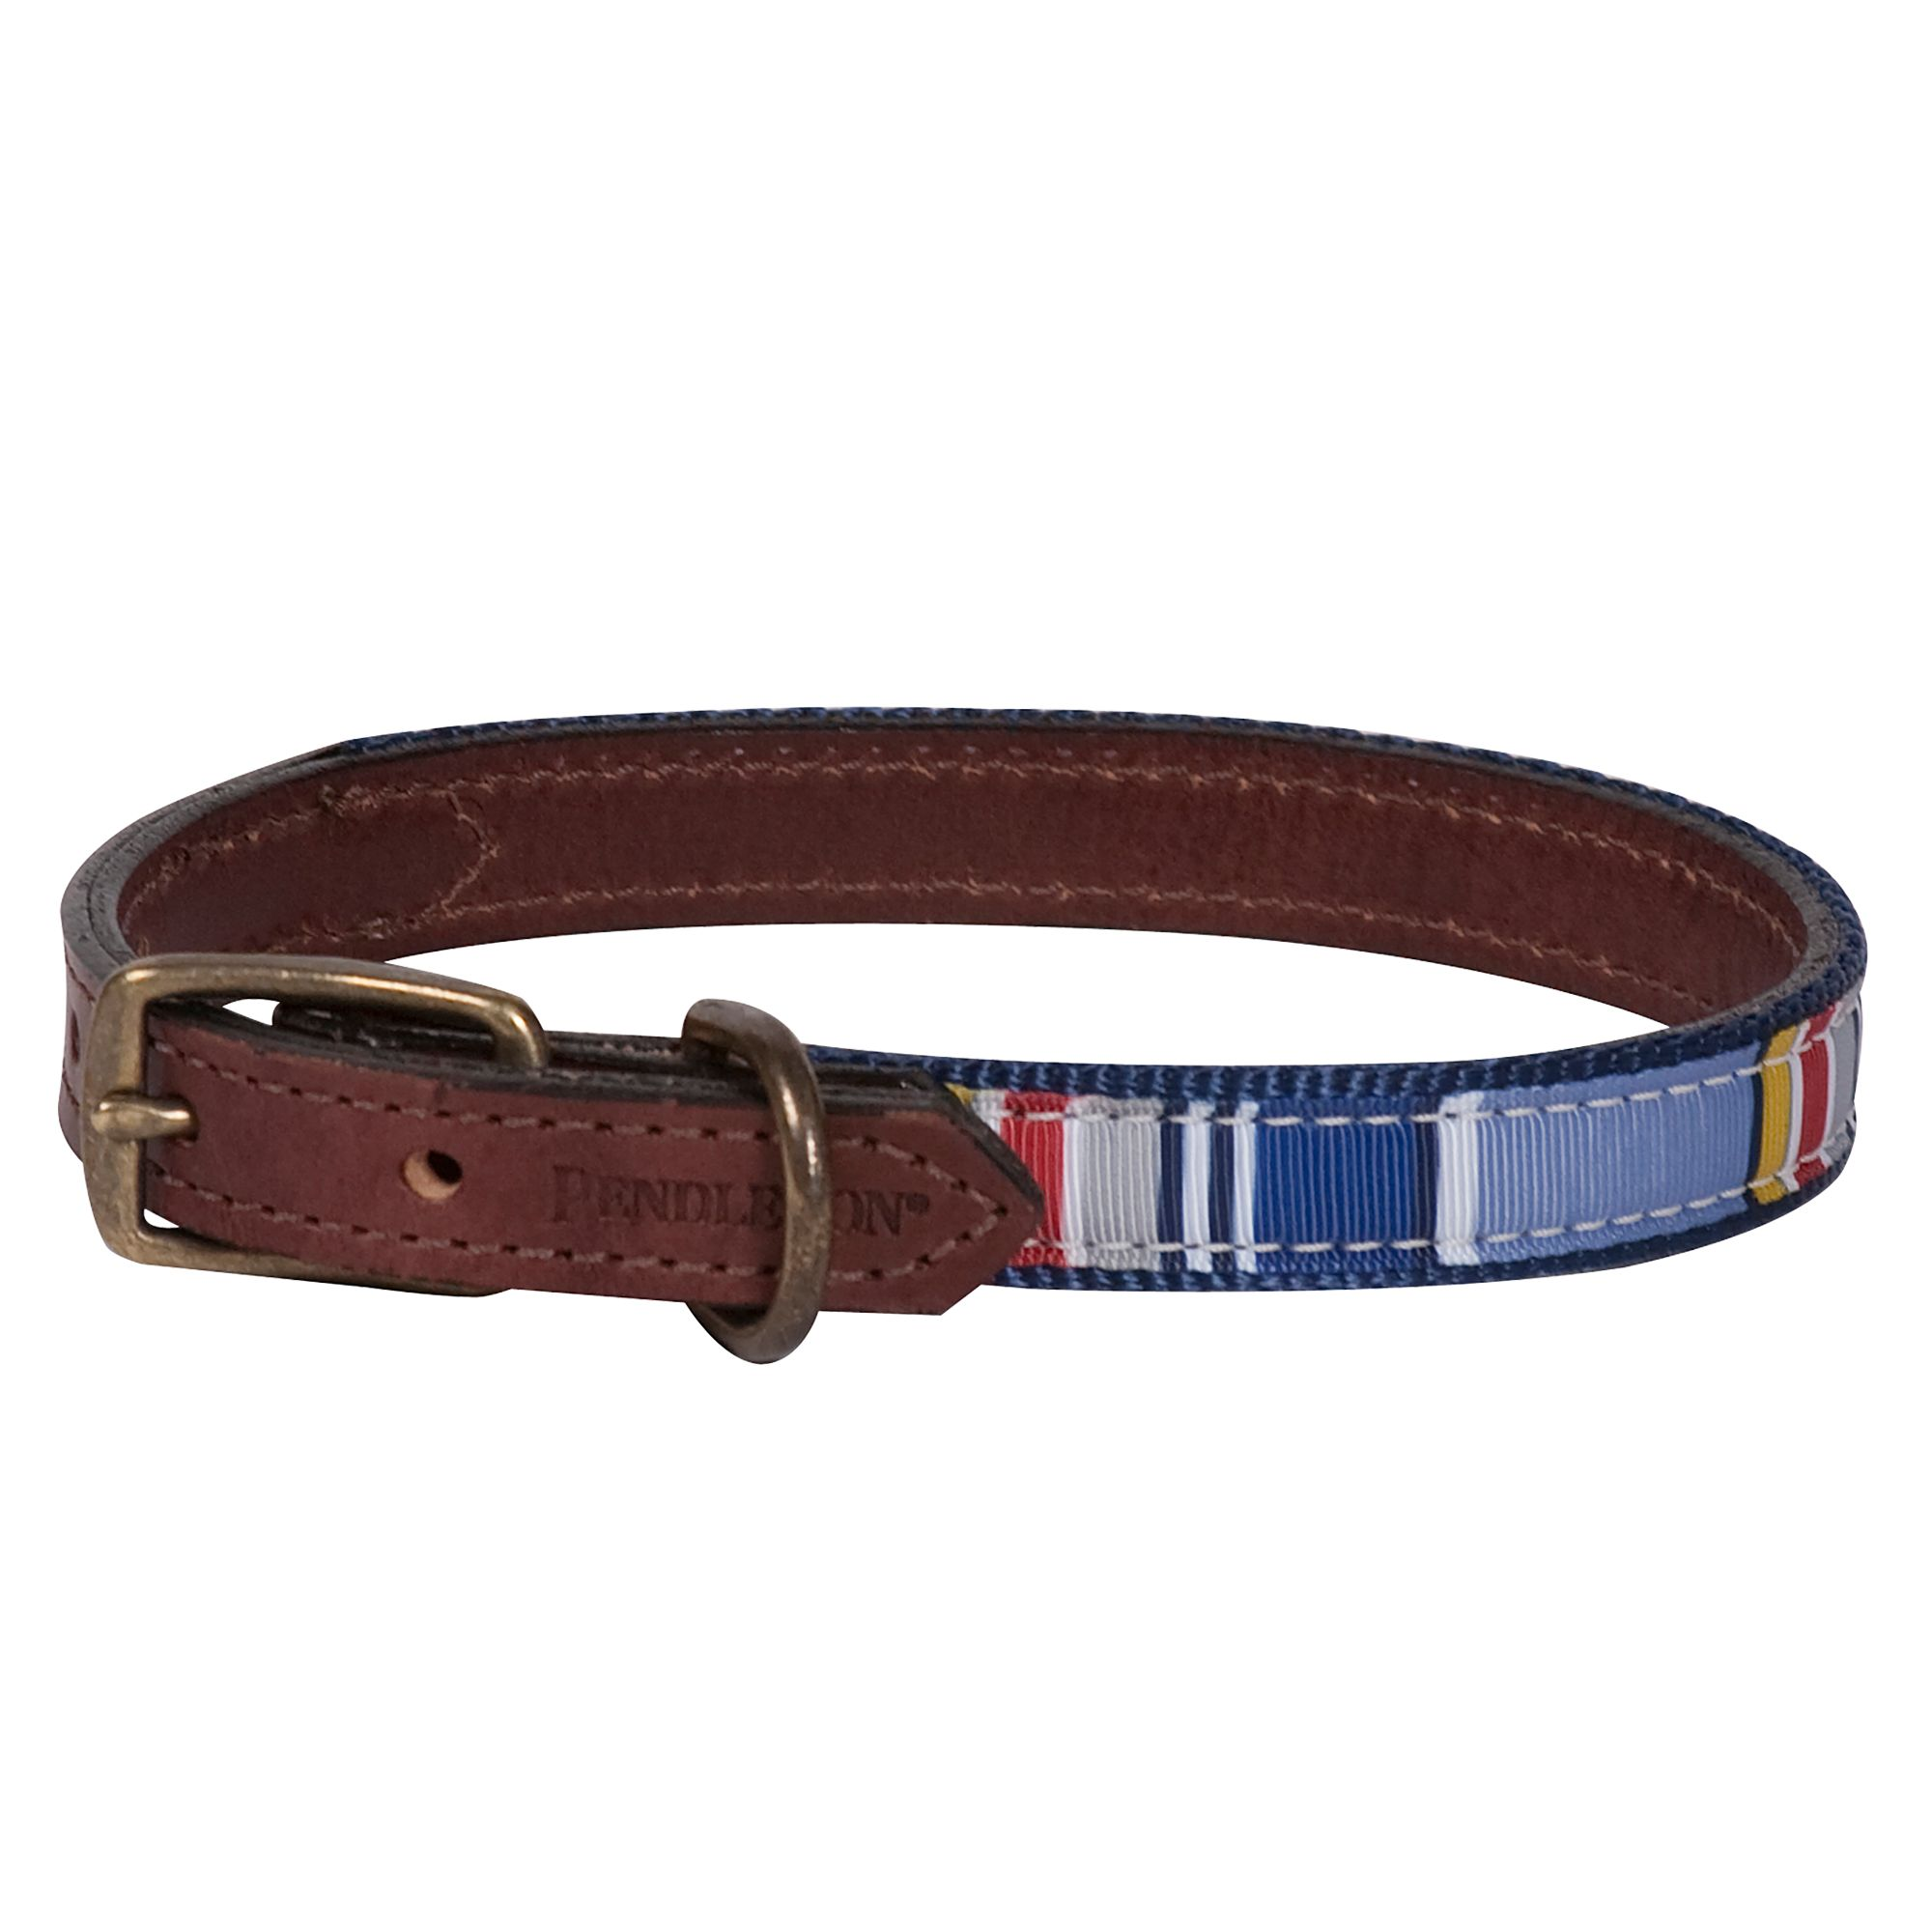 Pendleton National Park Yosemite Explorer Dog Collar size: Medium 5263166